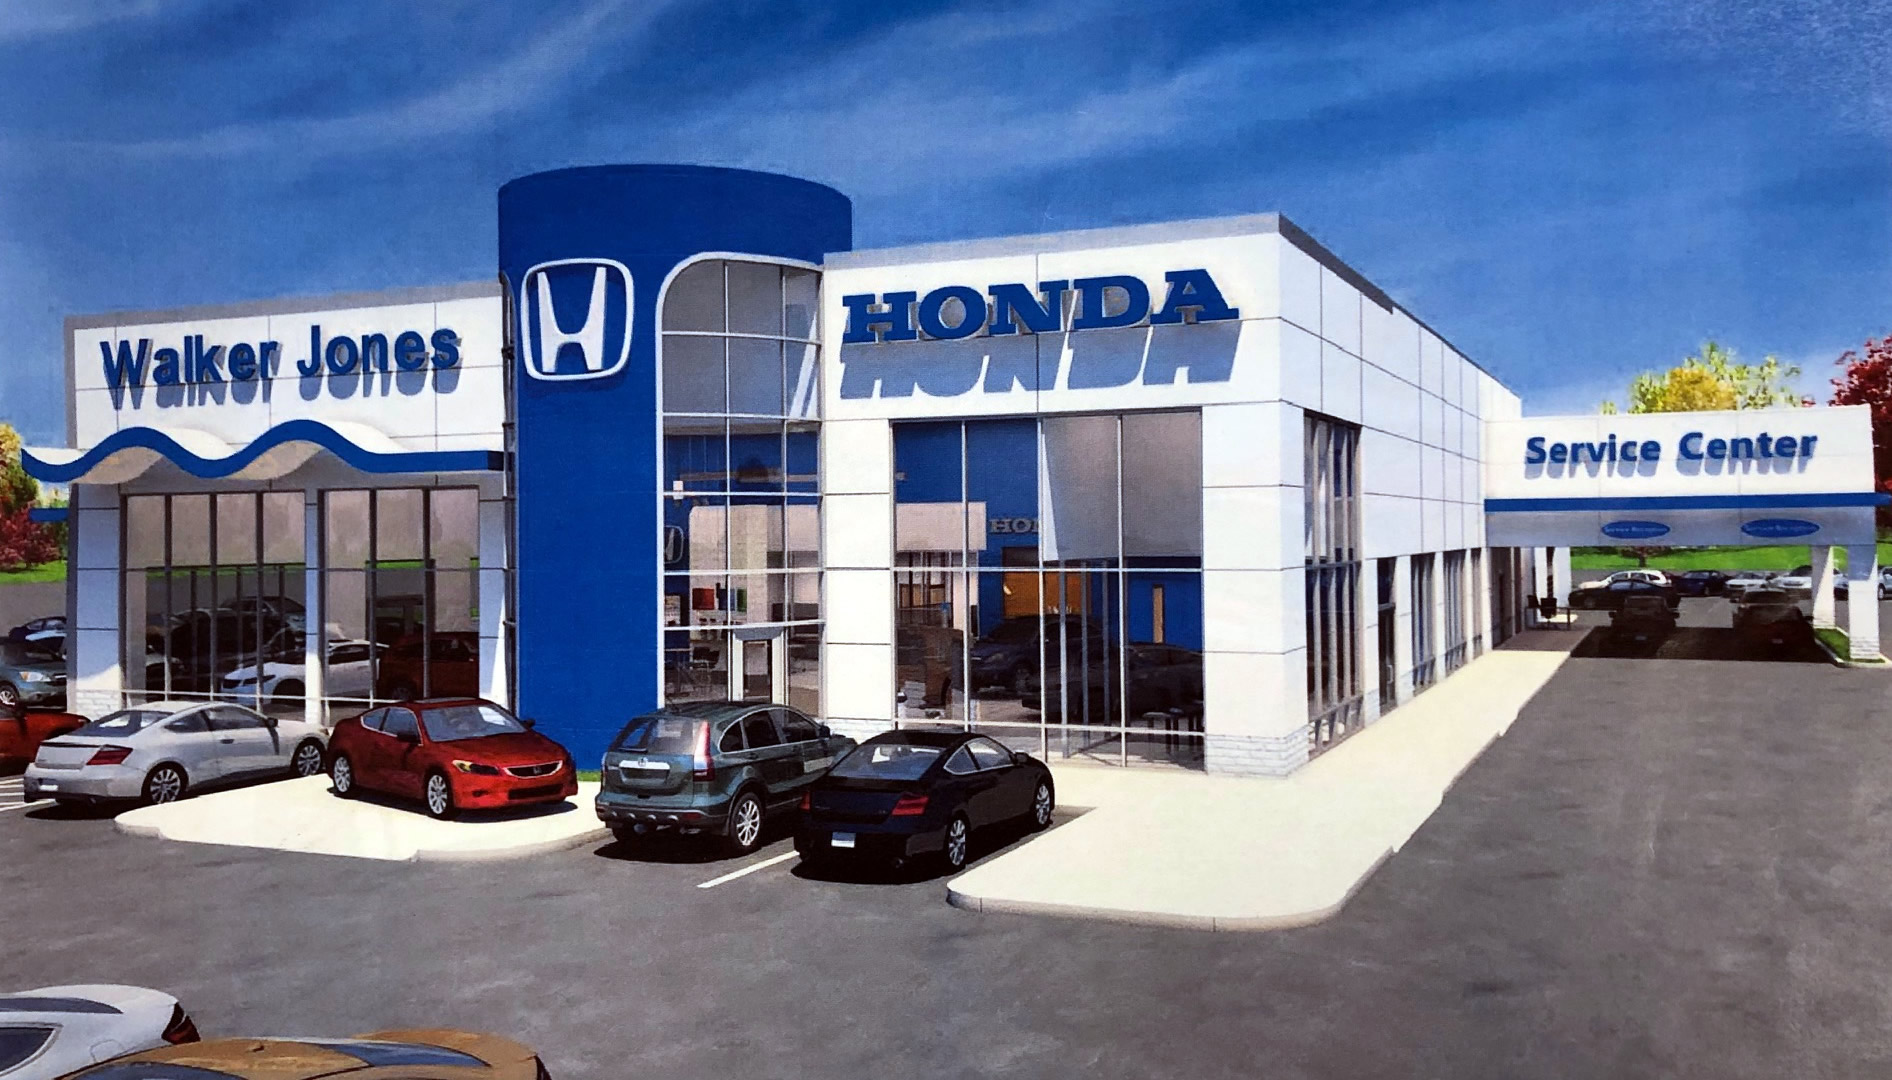 Walker Jones Honda Dealership